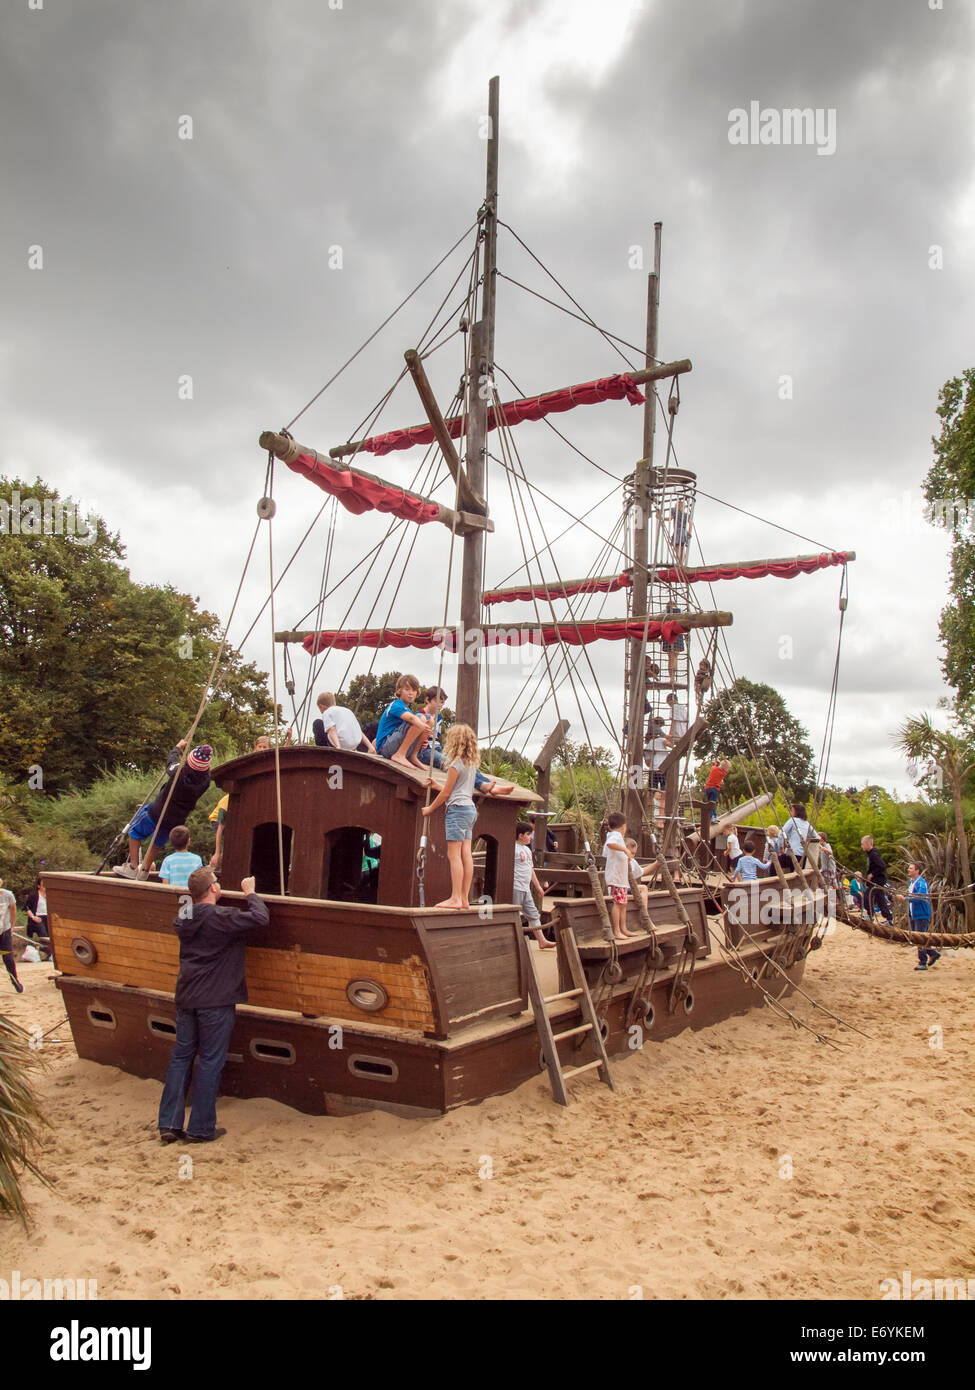 Fascinating Children Playing On The Pirate Ship Dianas Memorial Playground  With Handsome Children Playing On The Pirate Ship Dianas Memorial Playground Kensington  Gardens London On An Overcast Cloudy With Comely Covent Garden Gymbox Also My Secret Garden Pdf In Addition Fairies Garden And Garden Centre That Sell Fish As Well As Green Gardens Additionally Garden Toys For  Year Old From Alamycom With   Handsome Children Playing On The Pirate Ship Dianas Memorial Playground  With Comely Children Playing On The Pirate Ship Dianas Memorial Playground Kensington  Gardens London On An Overcast Cloudy And Fascinating Covent Garden Gymbox Also My Secret Garden Pdf In Addition Fairies Garden From Alamycom